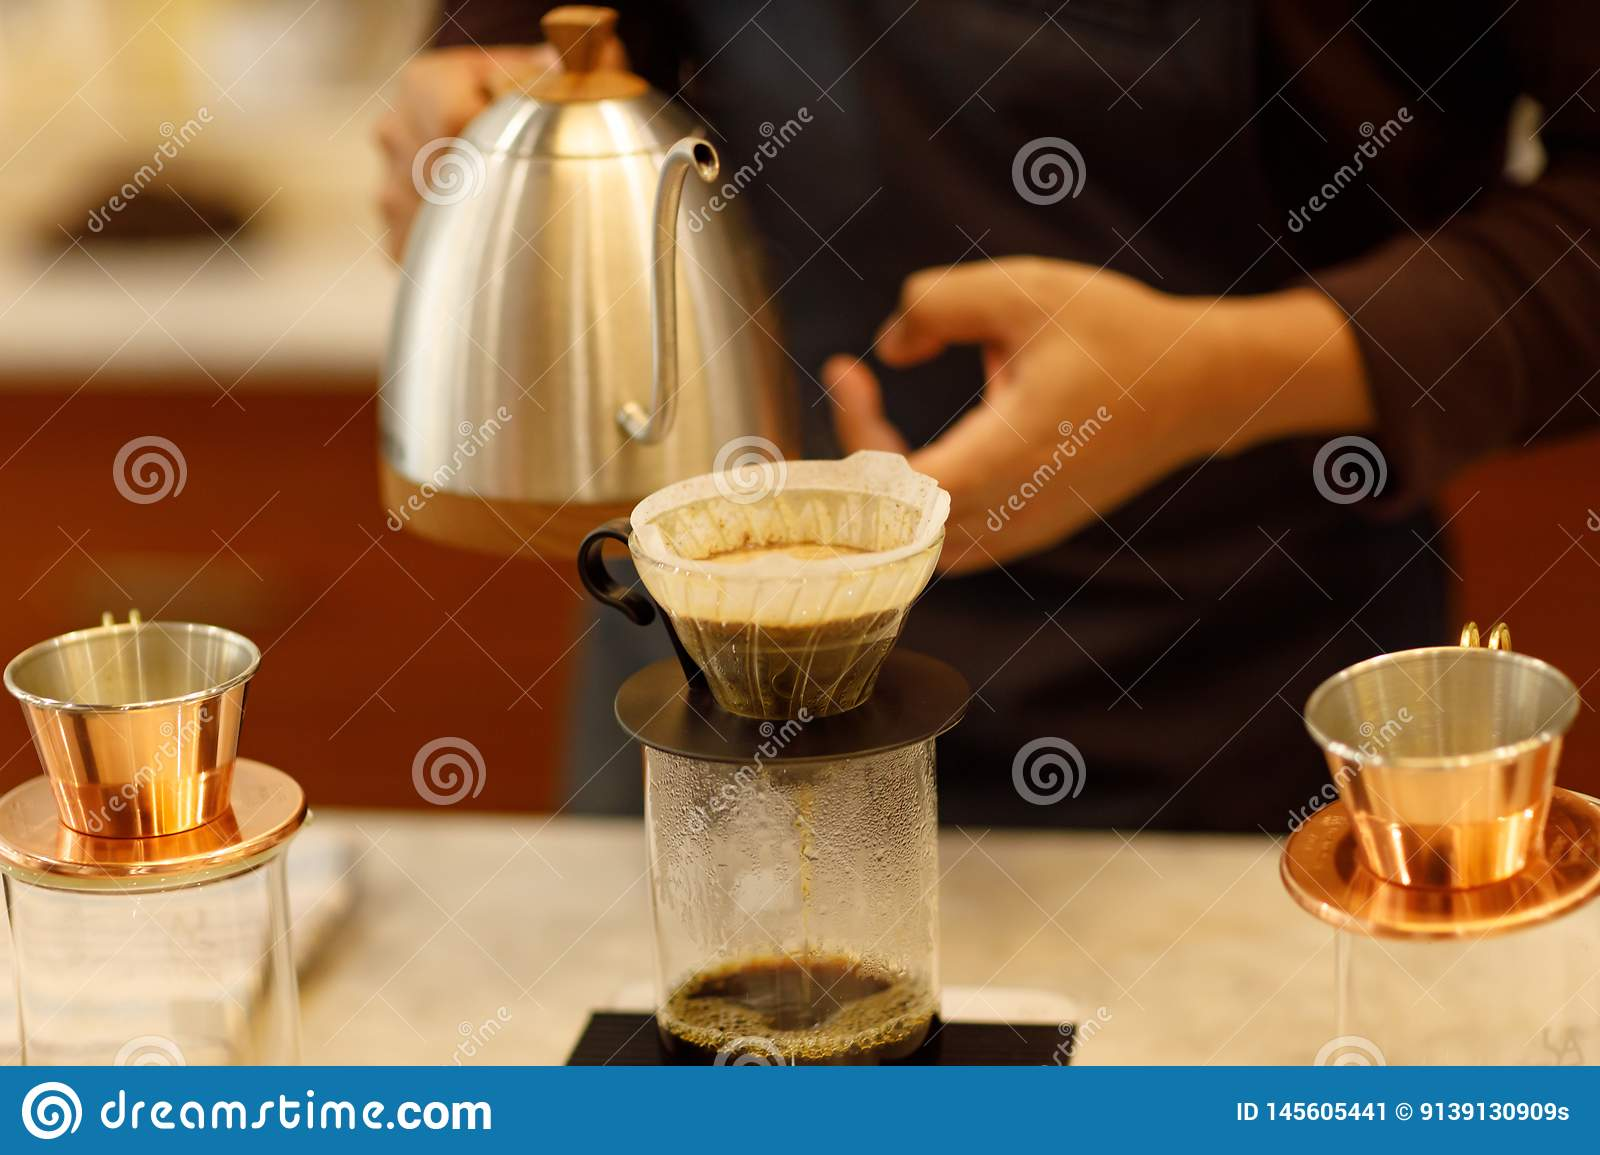 Young man barista pouring coffee